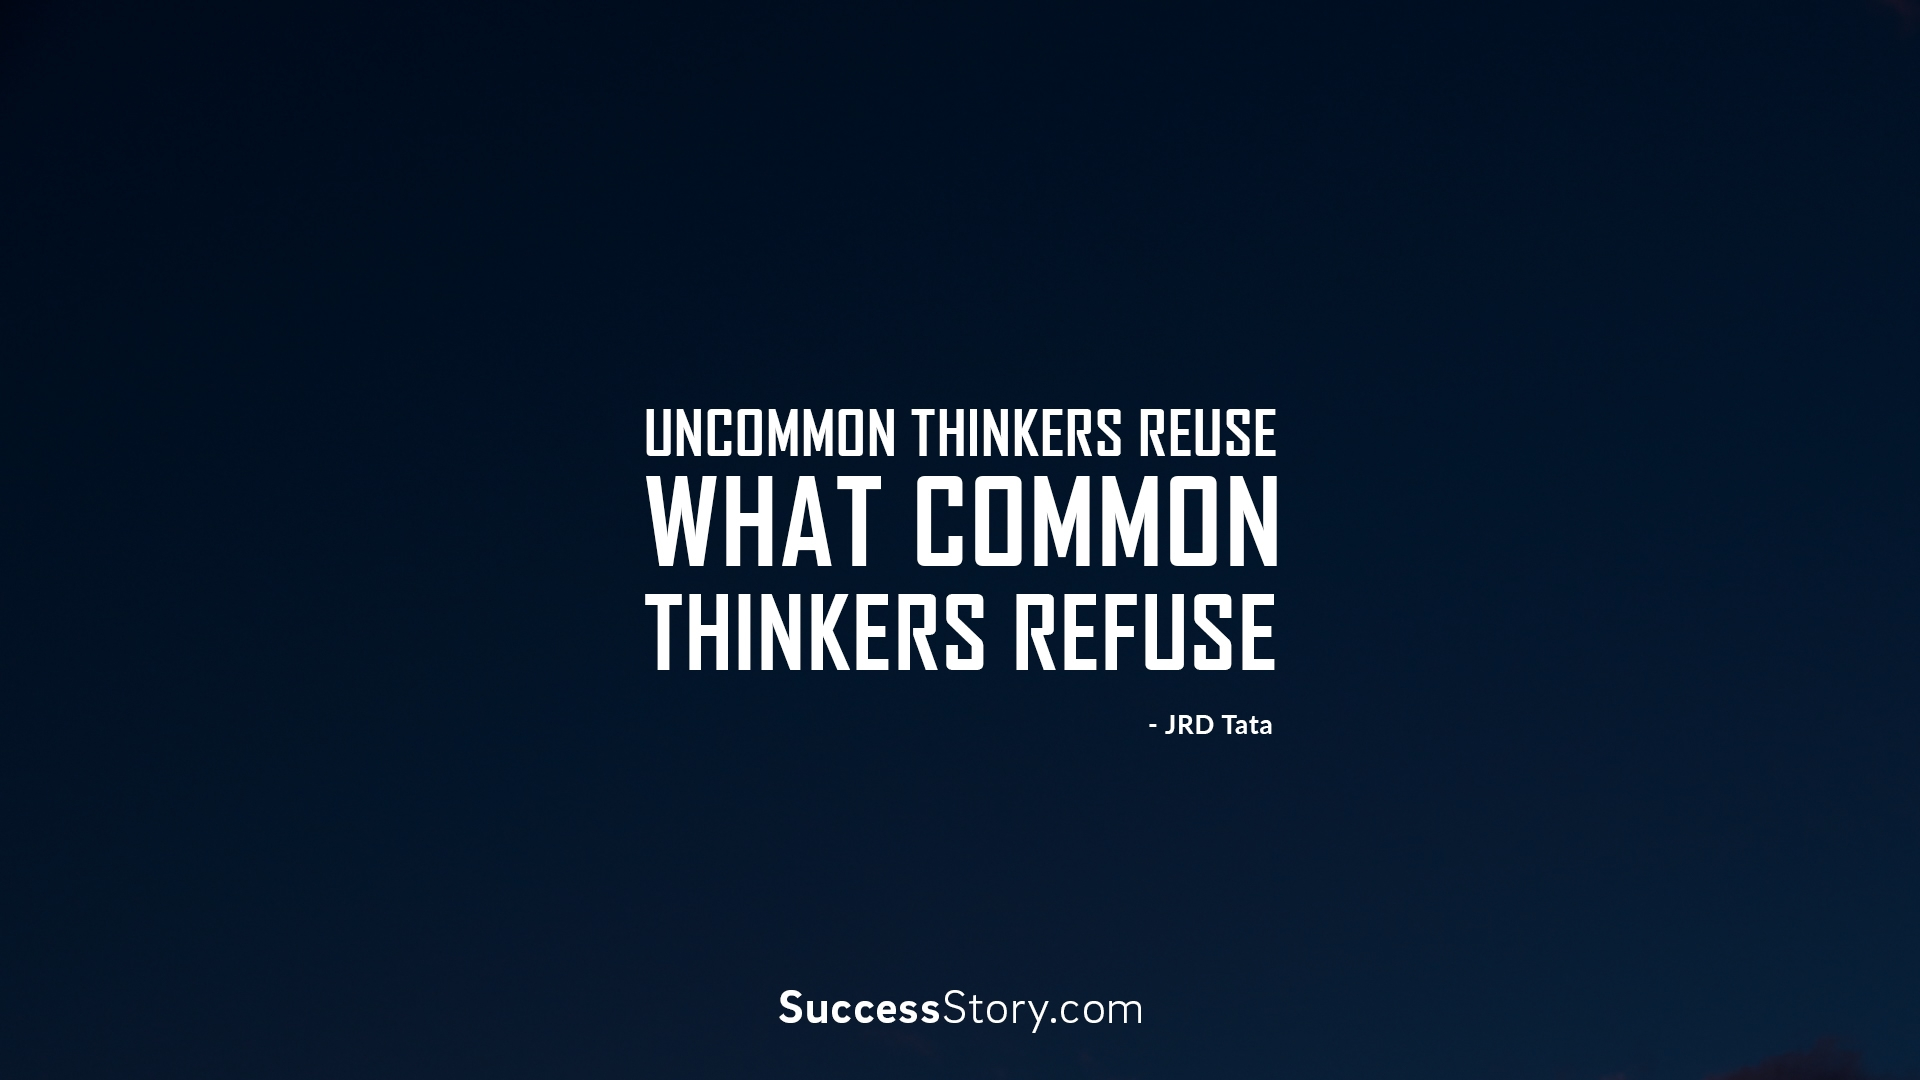 Uncommon thinkers reuse